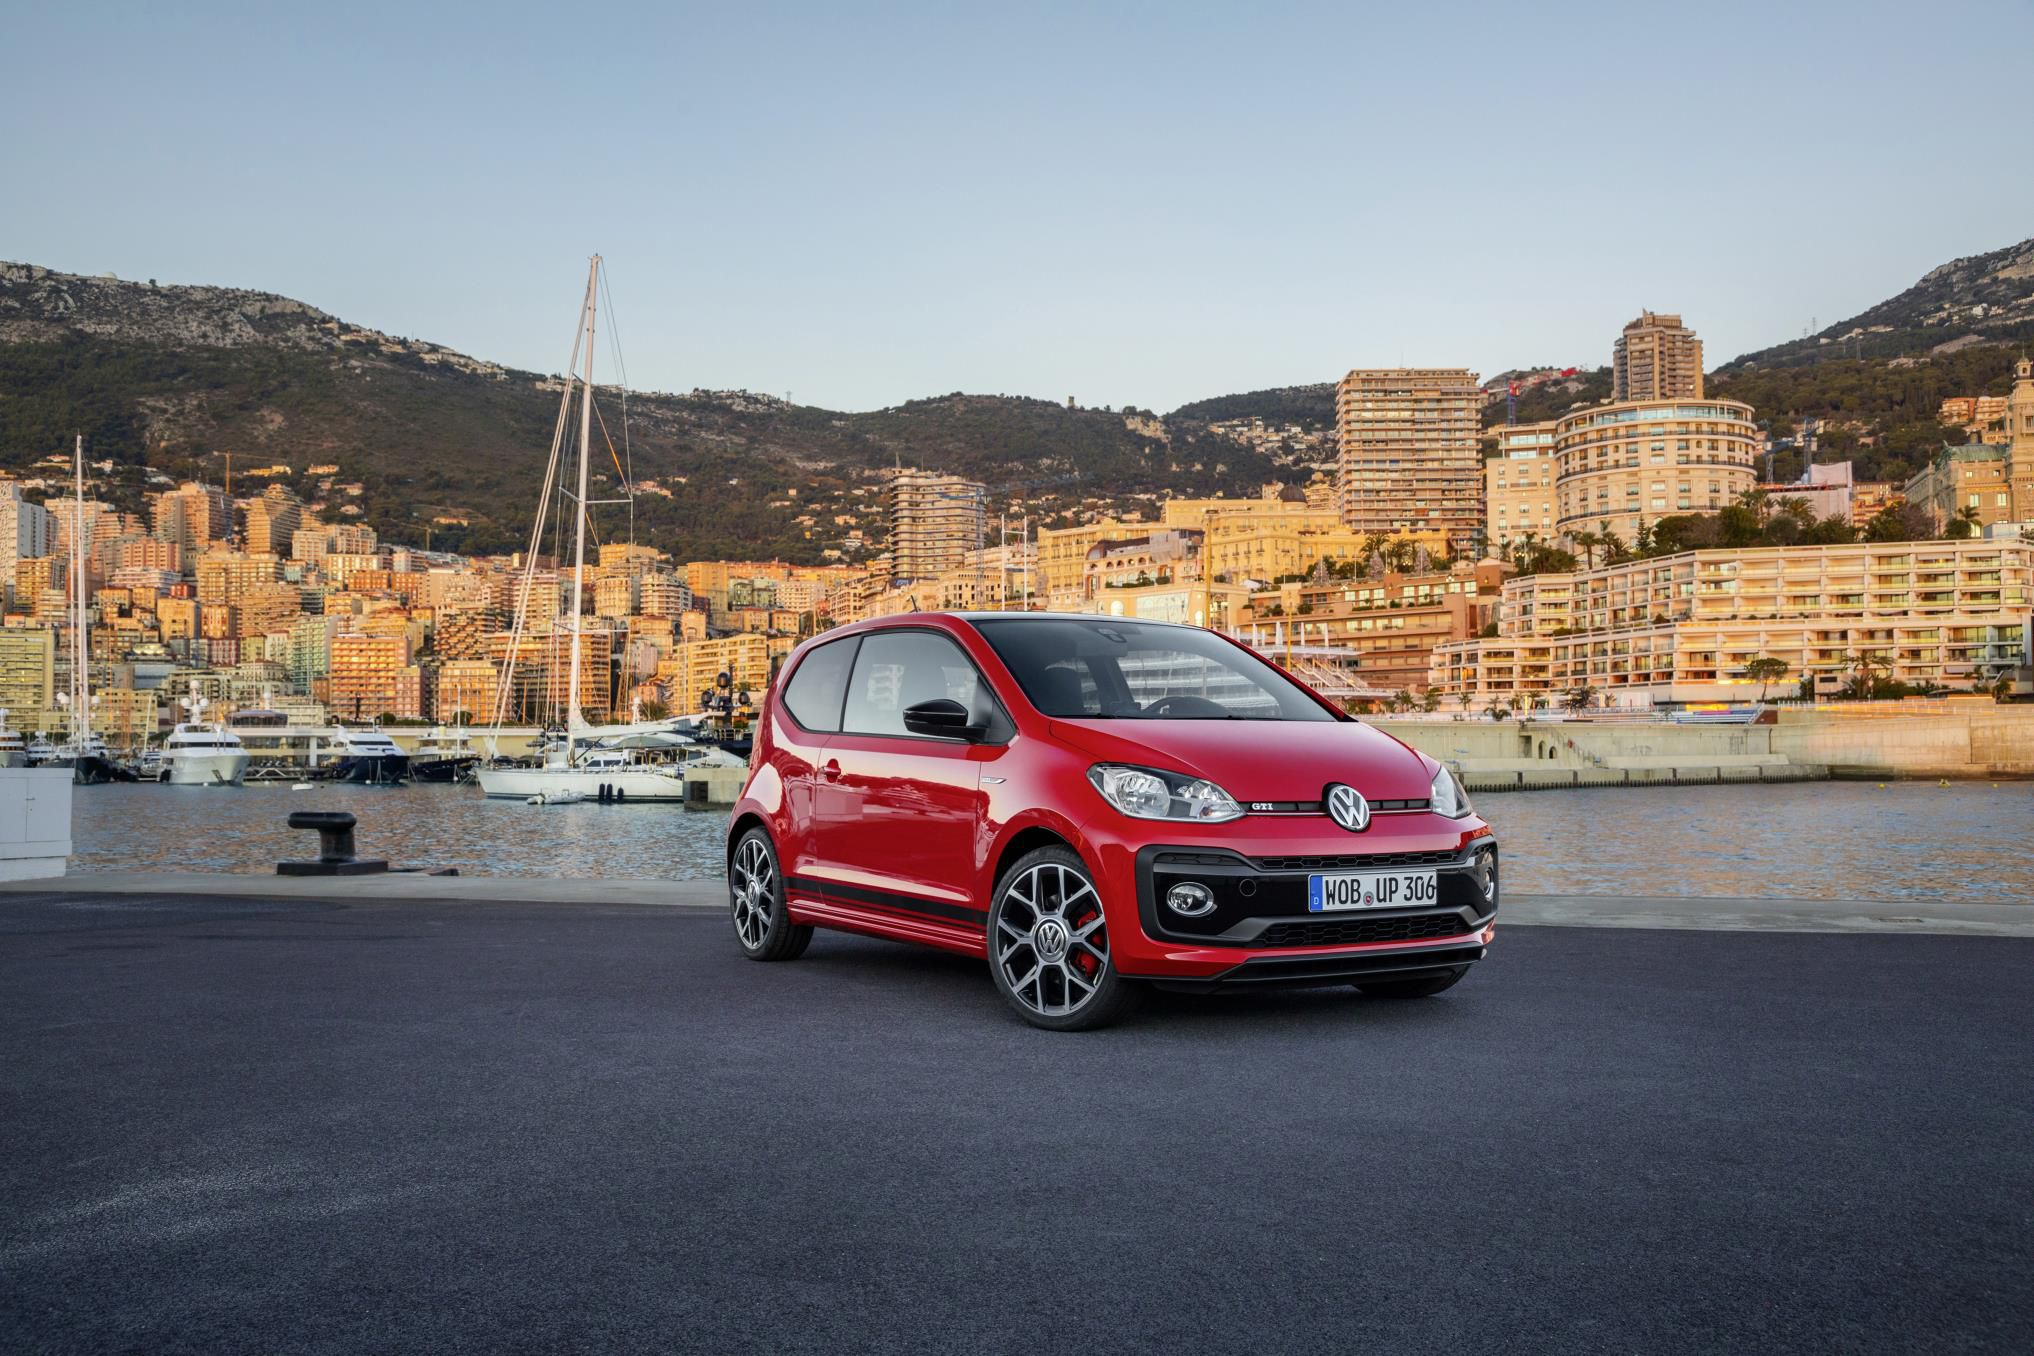 Red Volkswagen up! GTI parked at a harbour